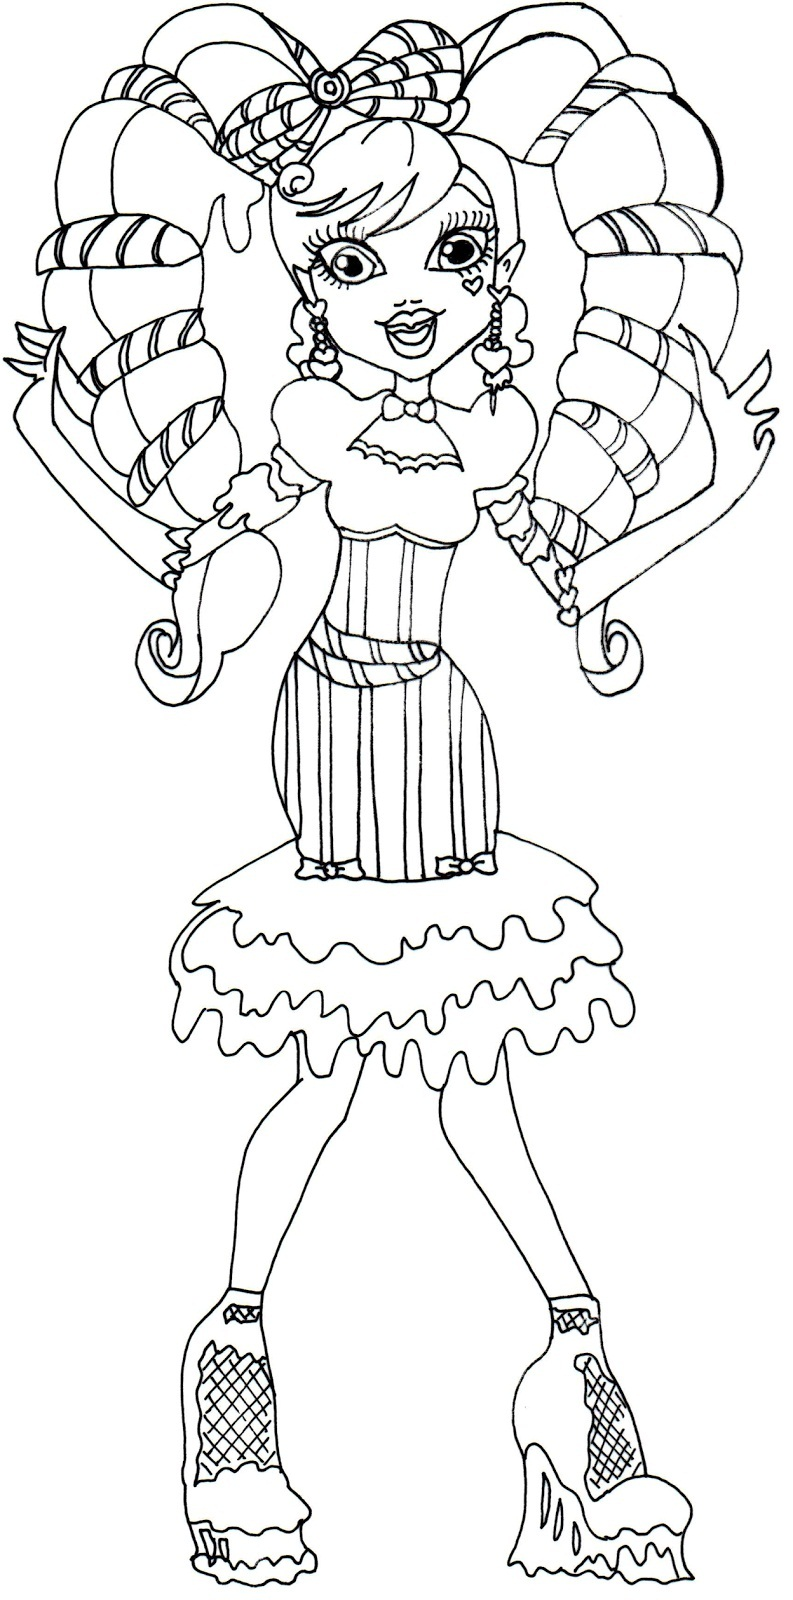 Printable Monster High Coloring Pages Coloring Me High Coloring Pages Printables